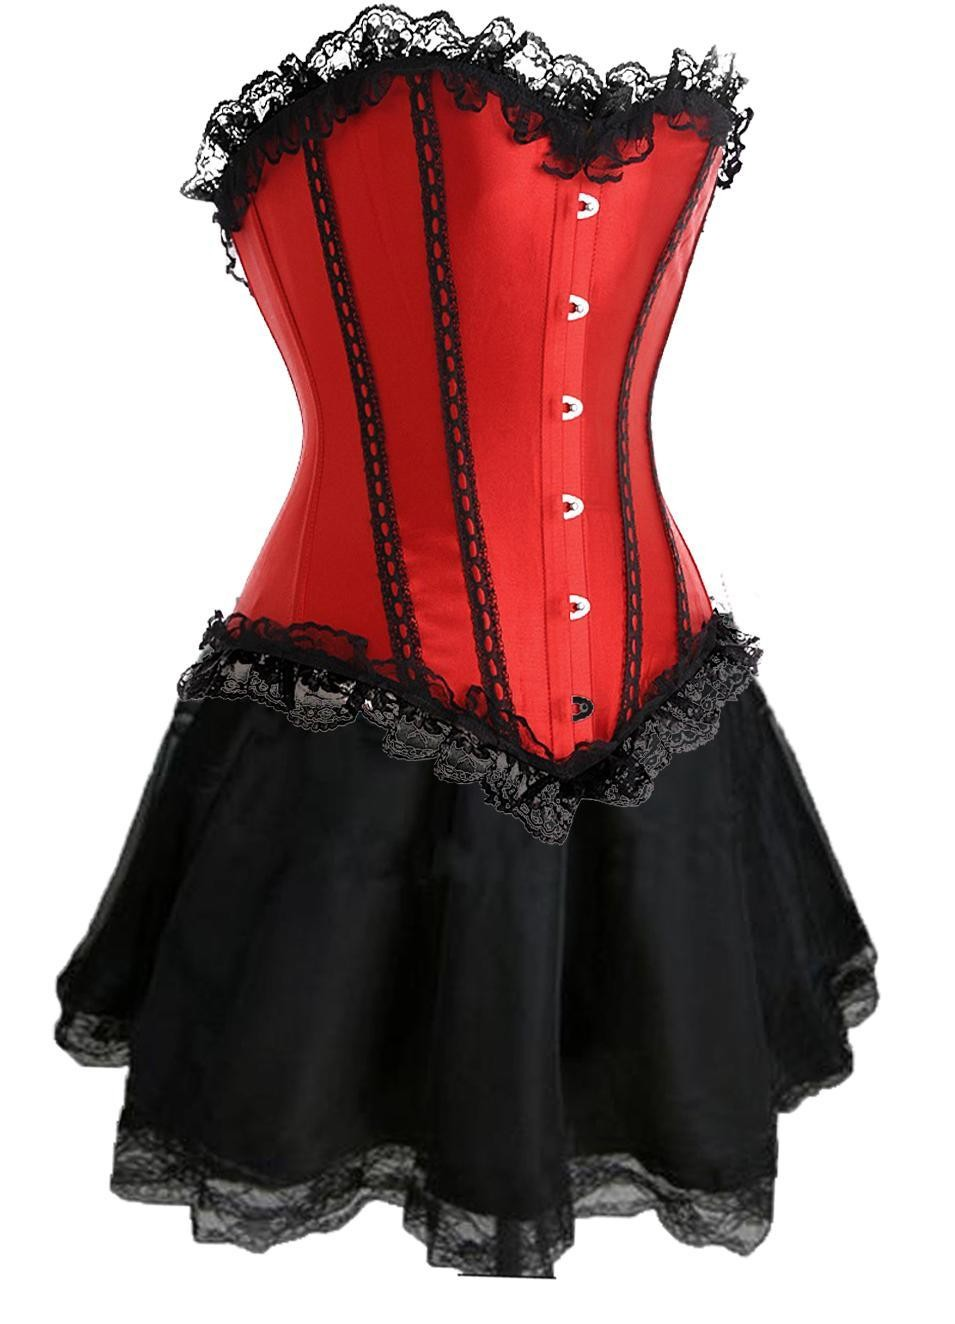 Red Lace-up Corset Outfit & Burlesque Skirt